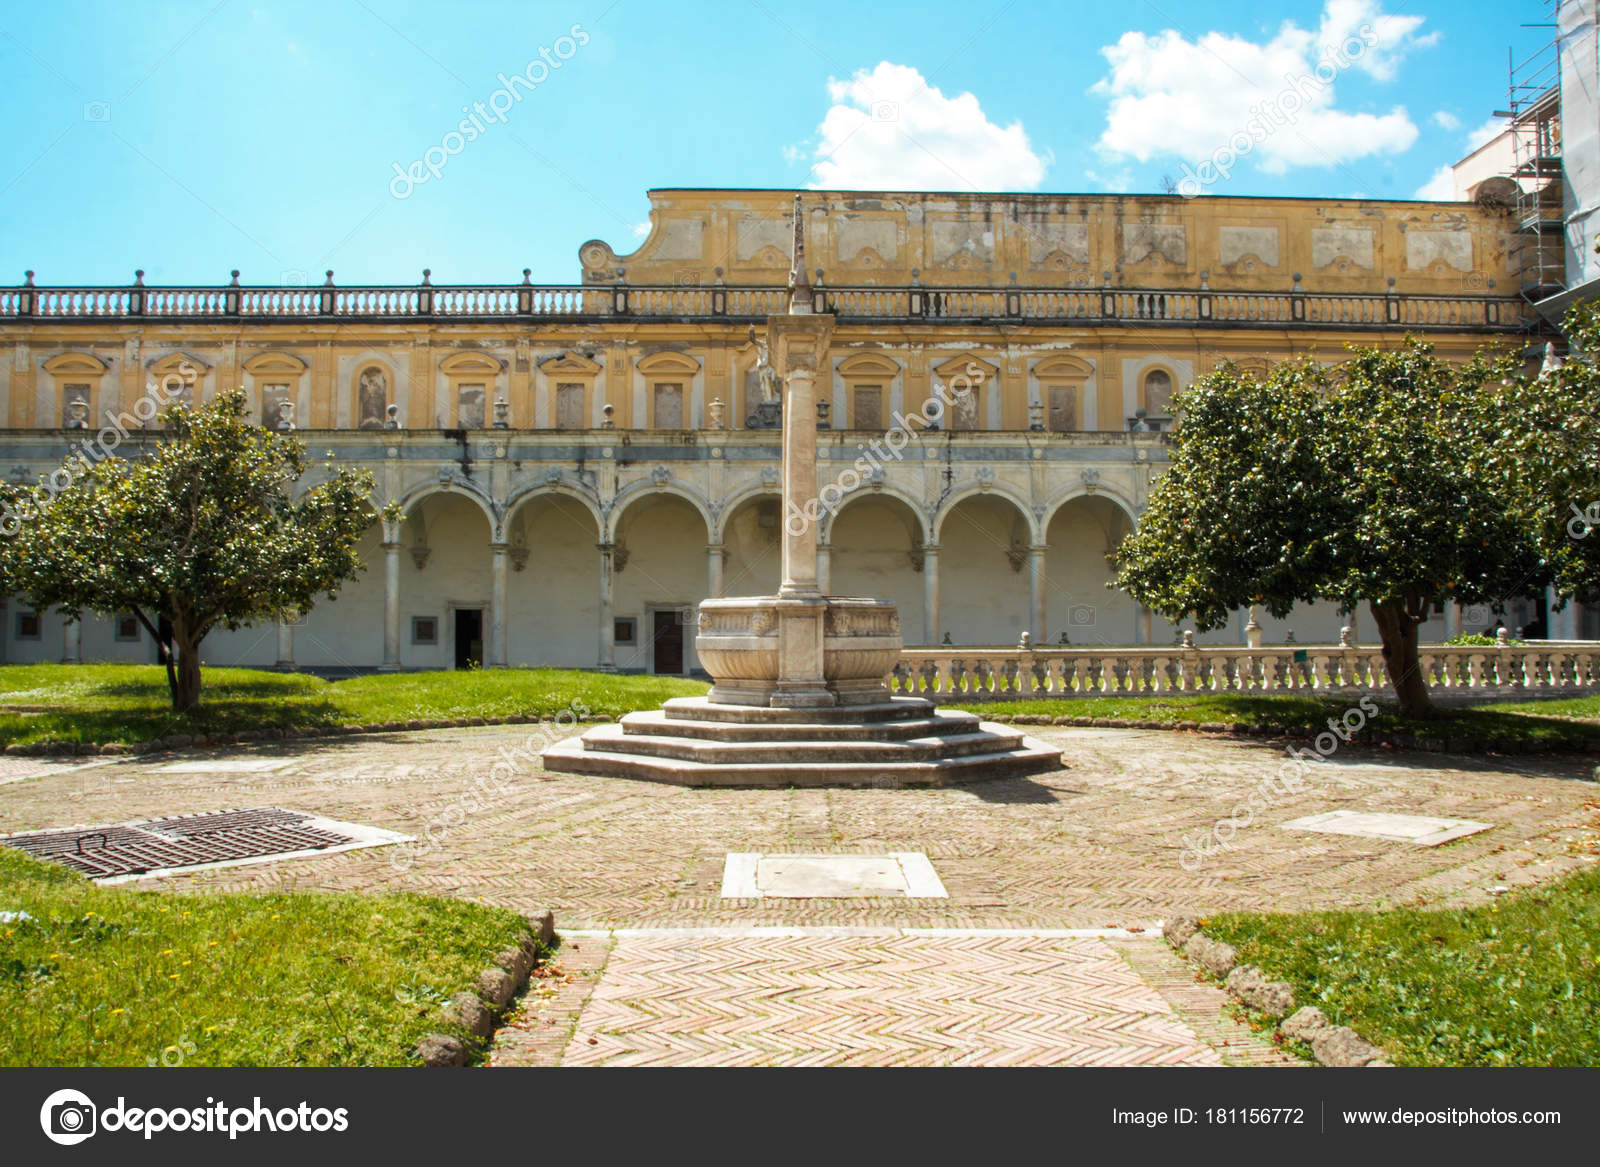 The Cloister Of San Martino Chartreuse In Naples Stock Editorial Photo C Laudibi Gmail Com 181156772